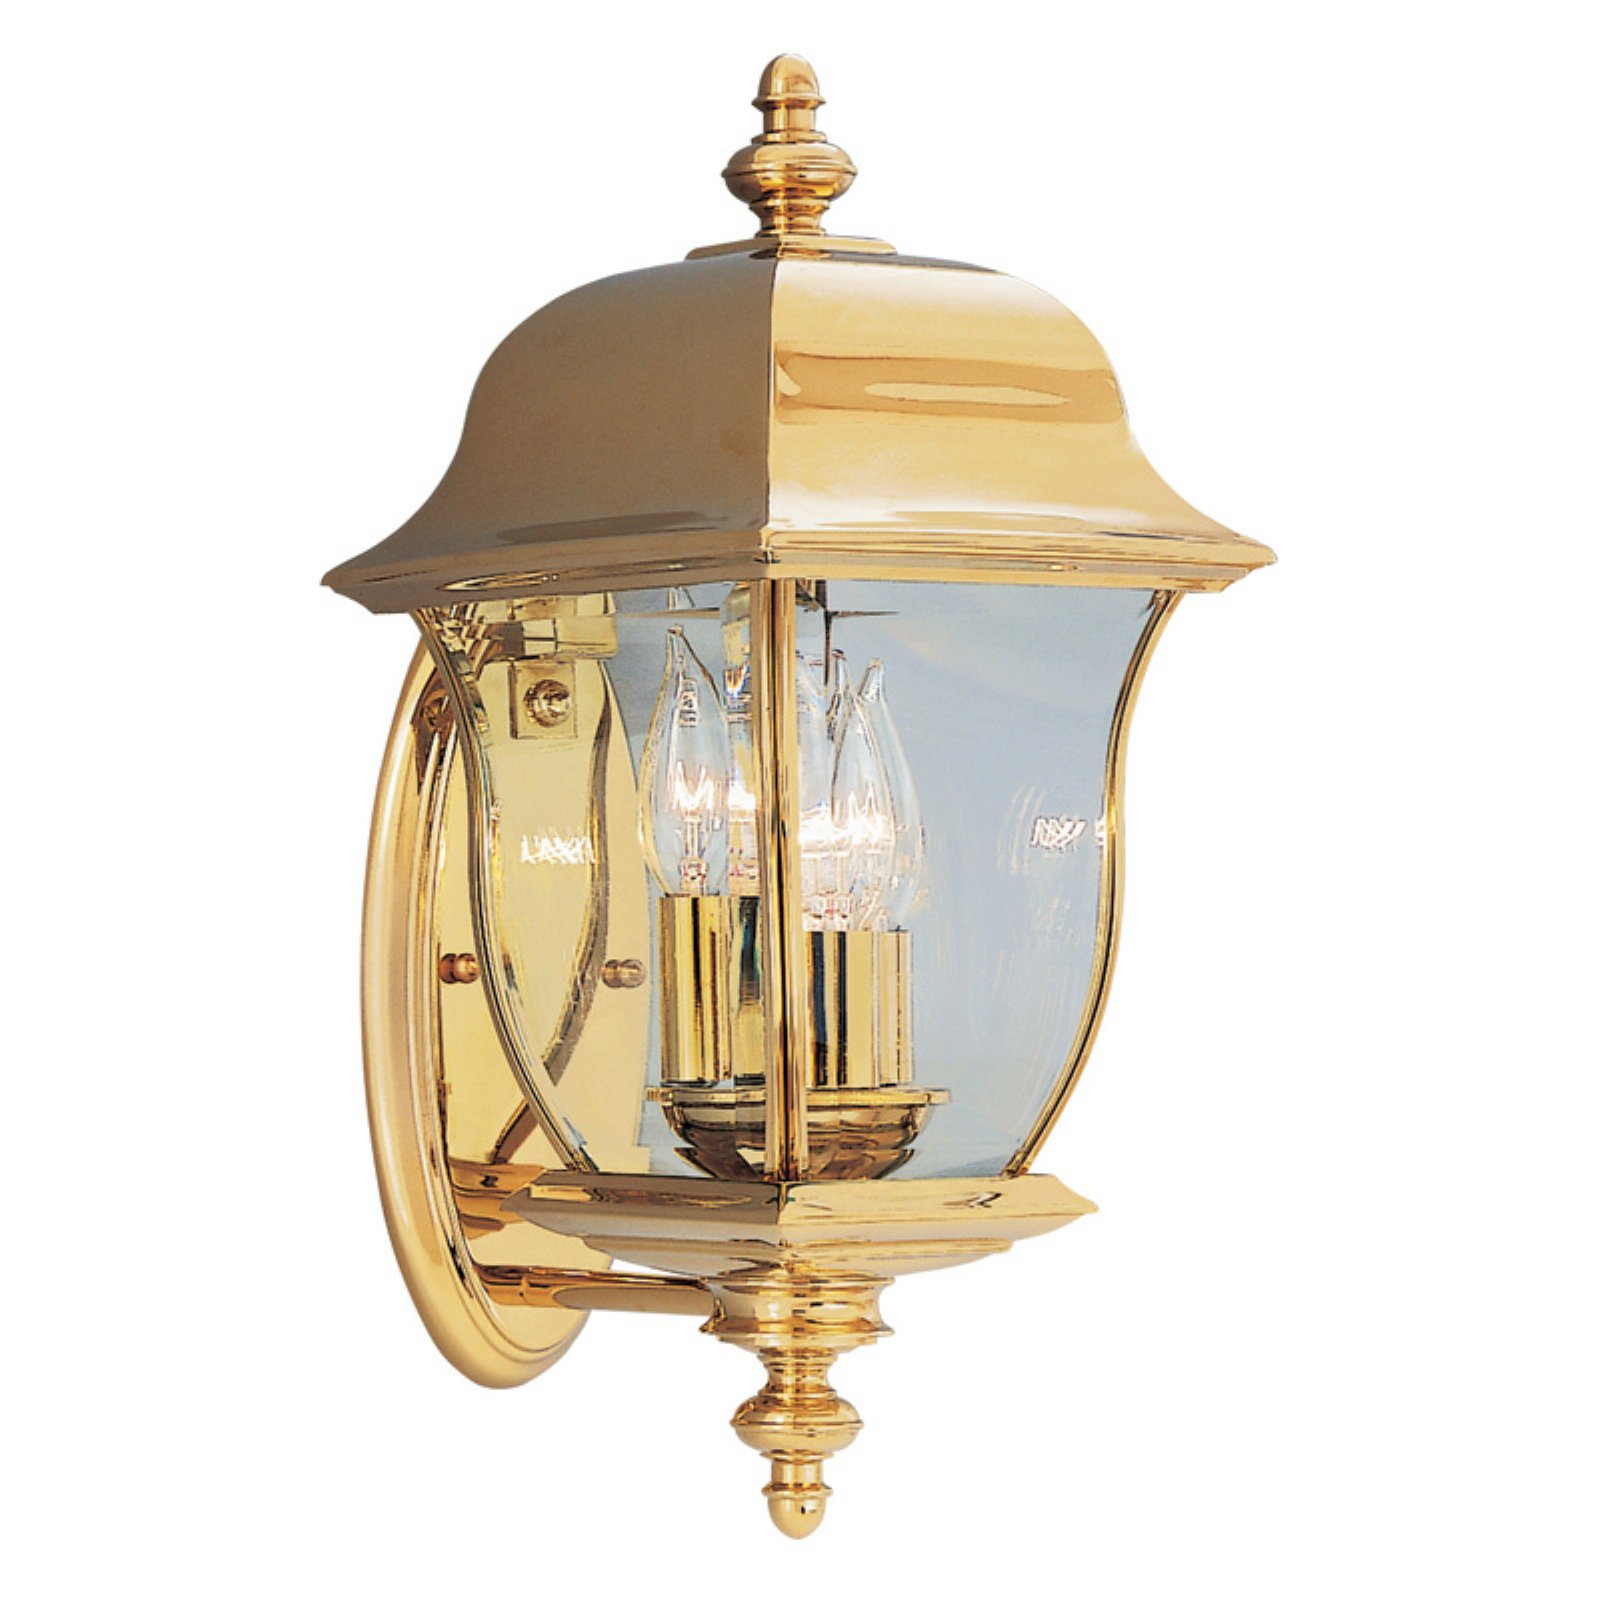 Designers Fountain Outdoor 1542-PVD-PB Gladiator Solid Brass Wall Lantern